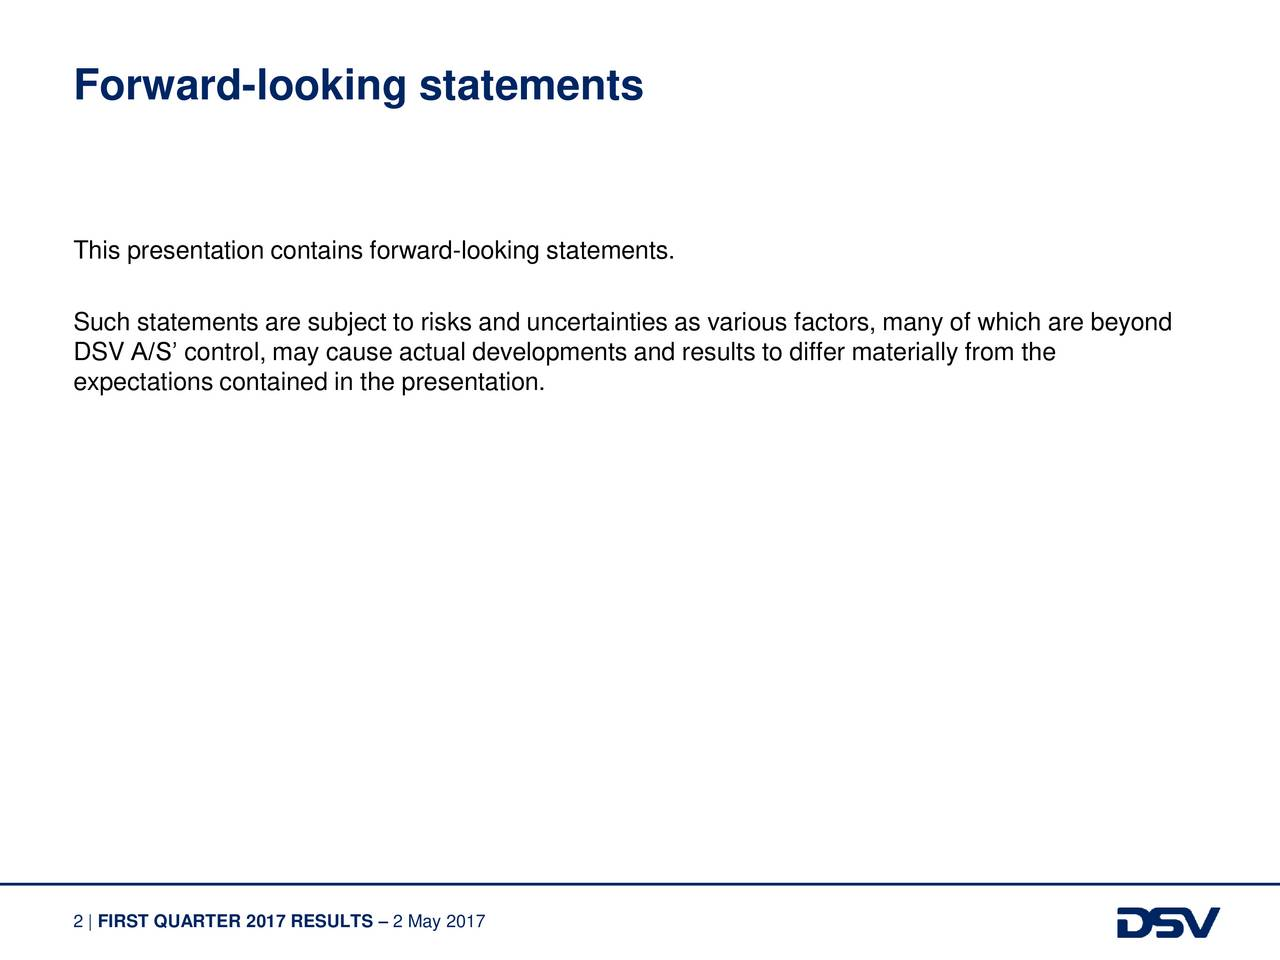 This presentation contains forward-looking statements. Such statements are subject to risks and uncertainties as various factors, many of which are beyond DSV A/S control, may cause actual developments and results to differ materially from the expectations contained in the presentation. 2 | FIRST QUARTER 2017 RESULTS  2 May 2017